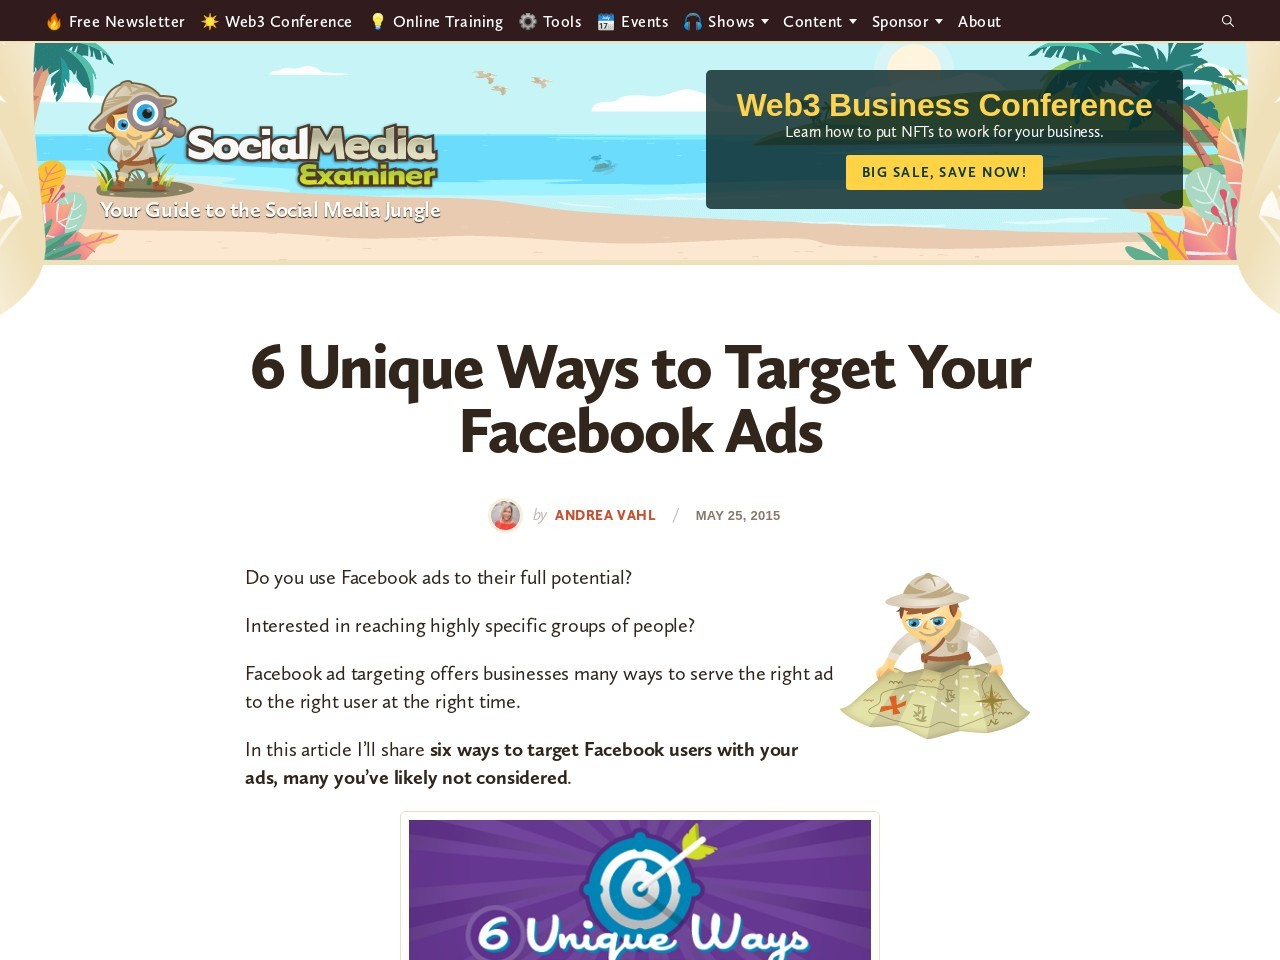 6 Unique Ways to Target Your Facebook Ads